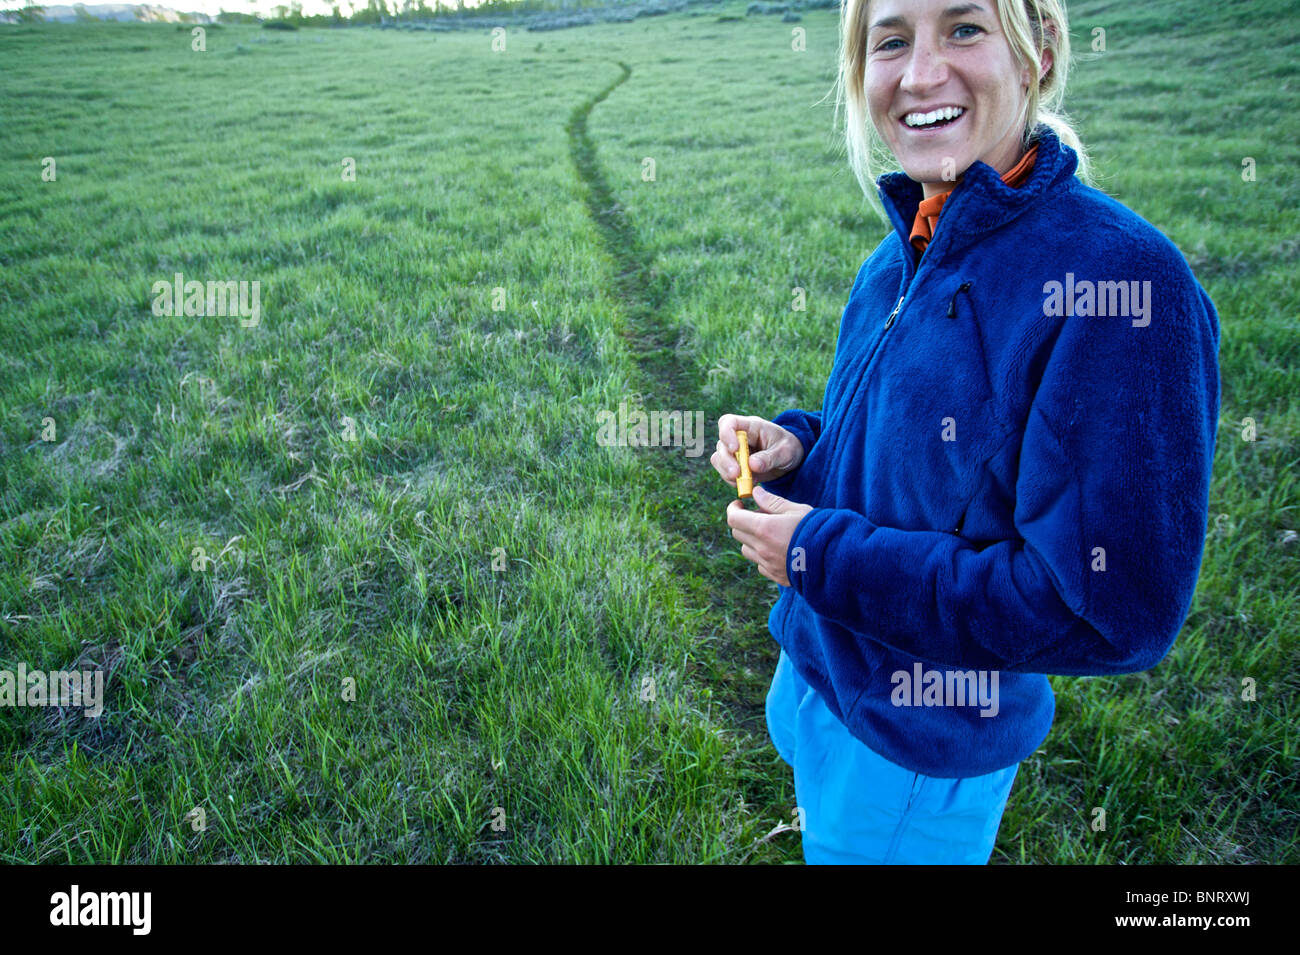 A woman breaks from trail running. - Stock Image